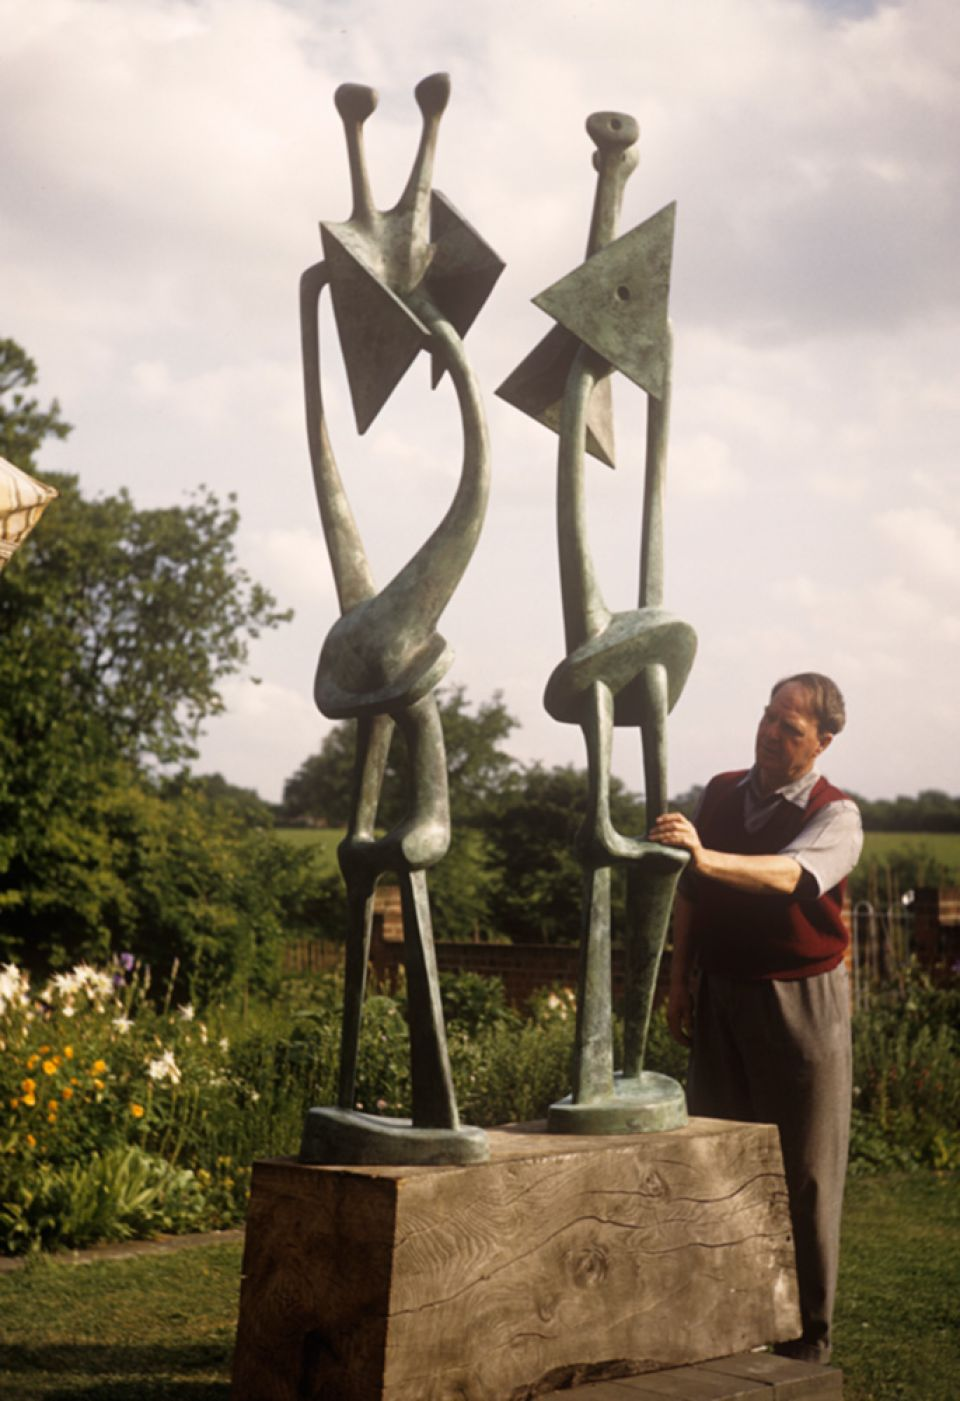 Henry Moore with 'Double Standing Figure' 1950 (LH 291) in his garden in Perry Green, c.1950.